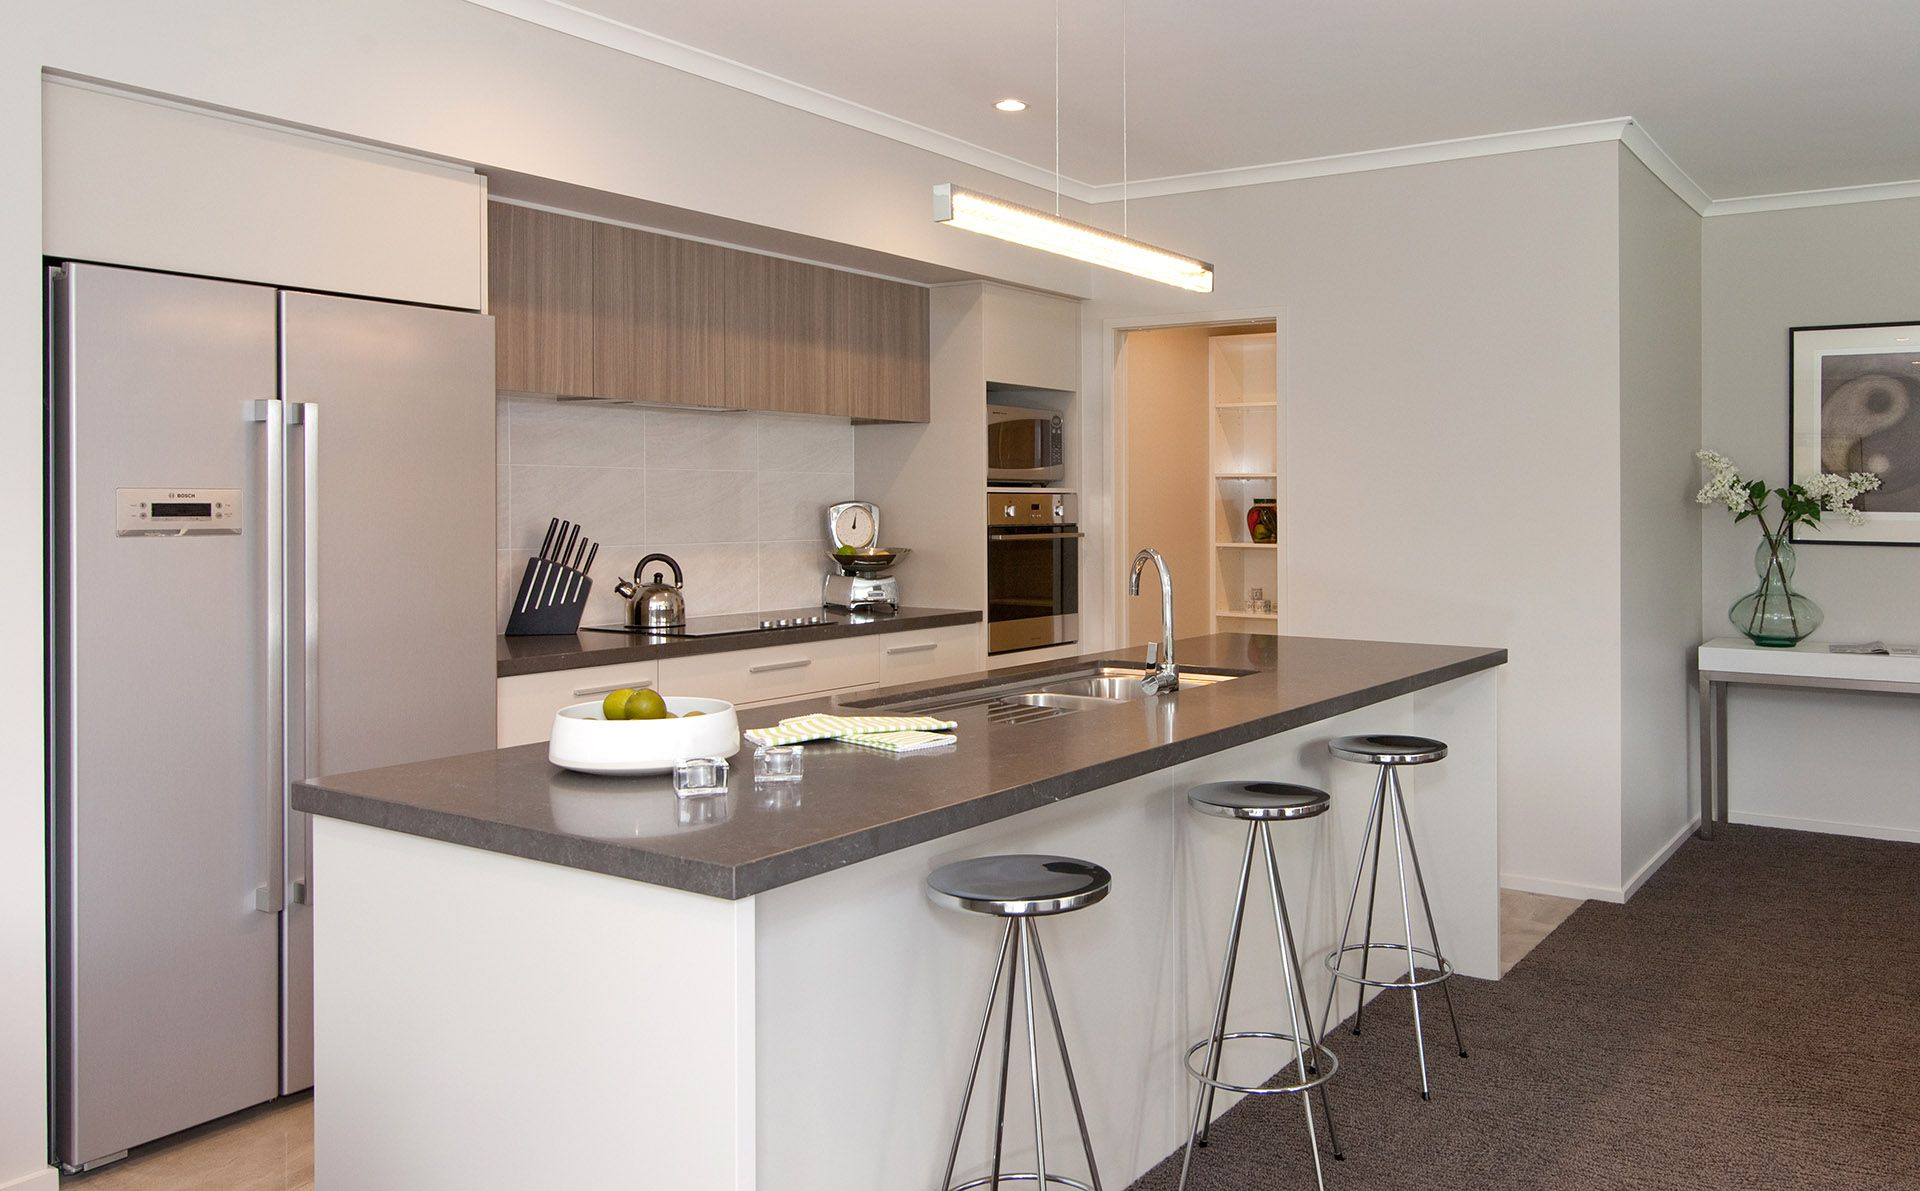 kitchen showhome g j gardner homes new zealand showhome